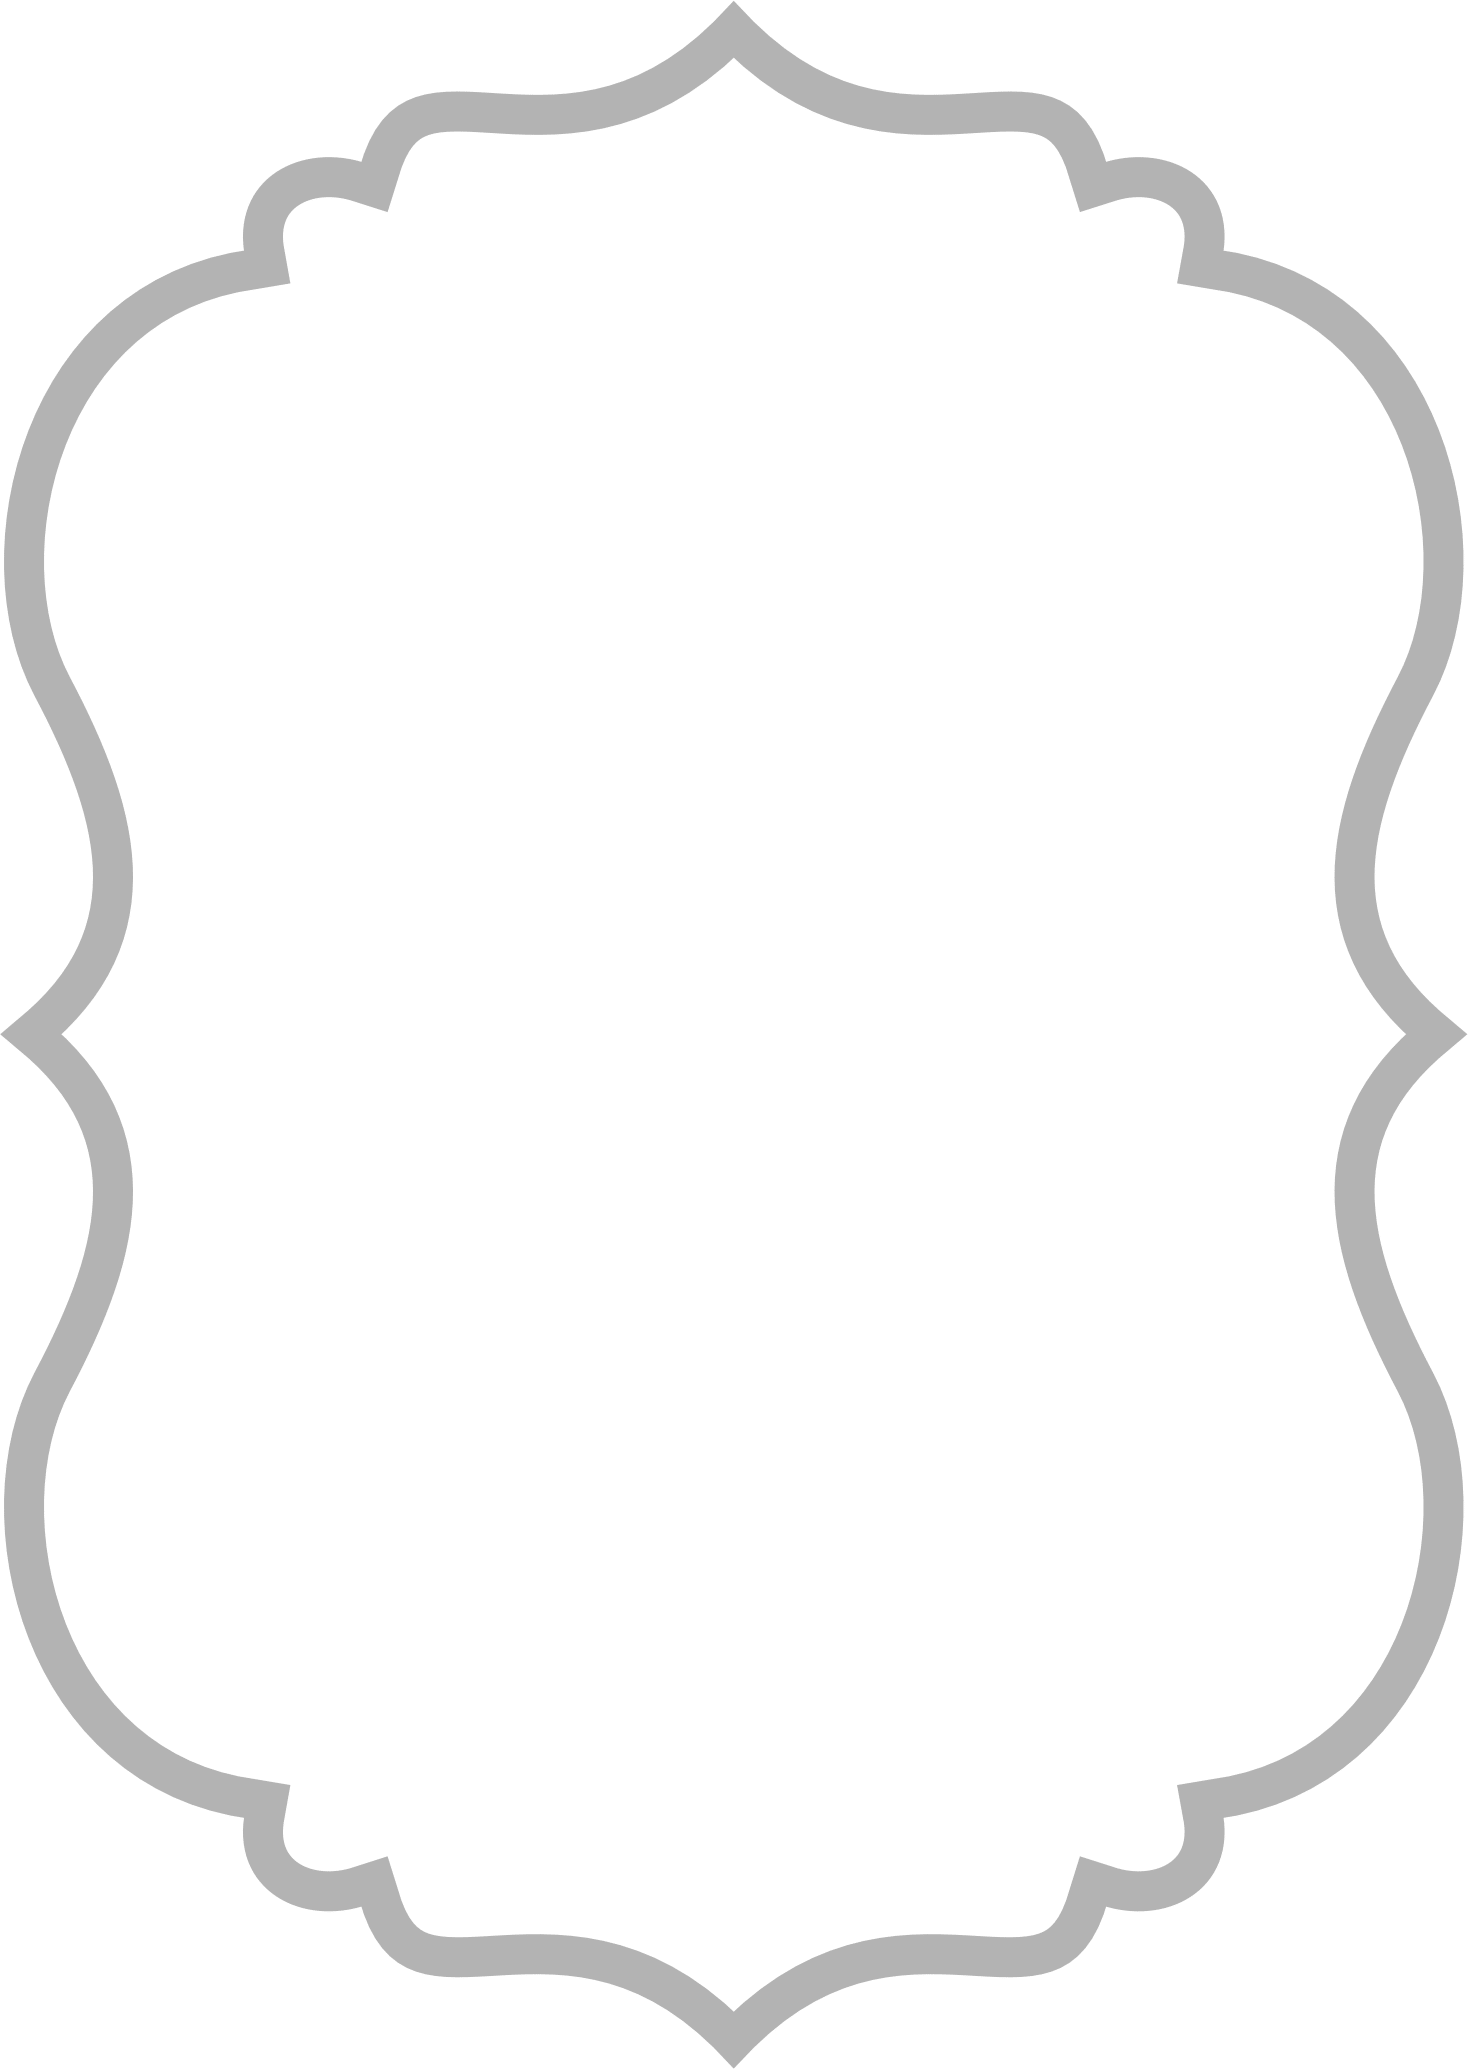 Transparent transparentpng png image. Shape clipart vector stock